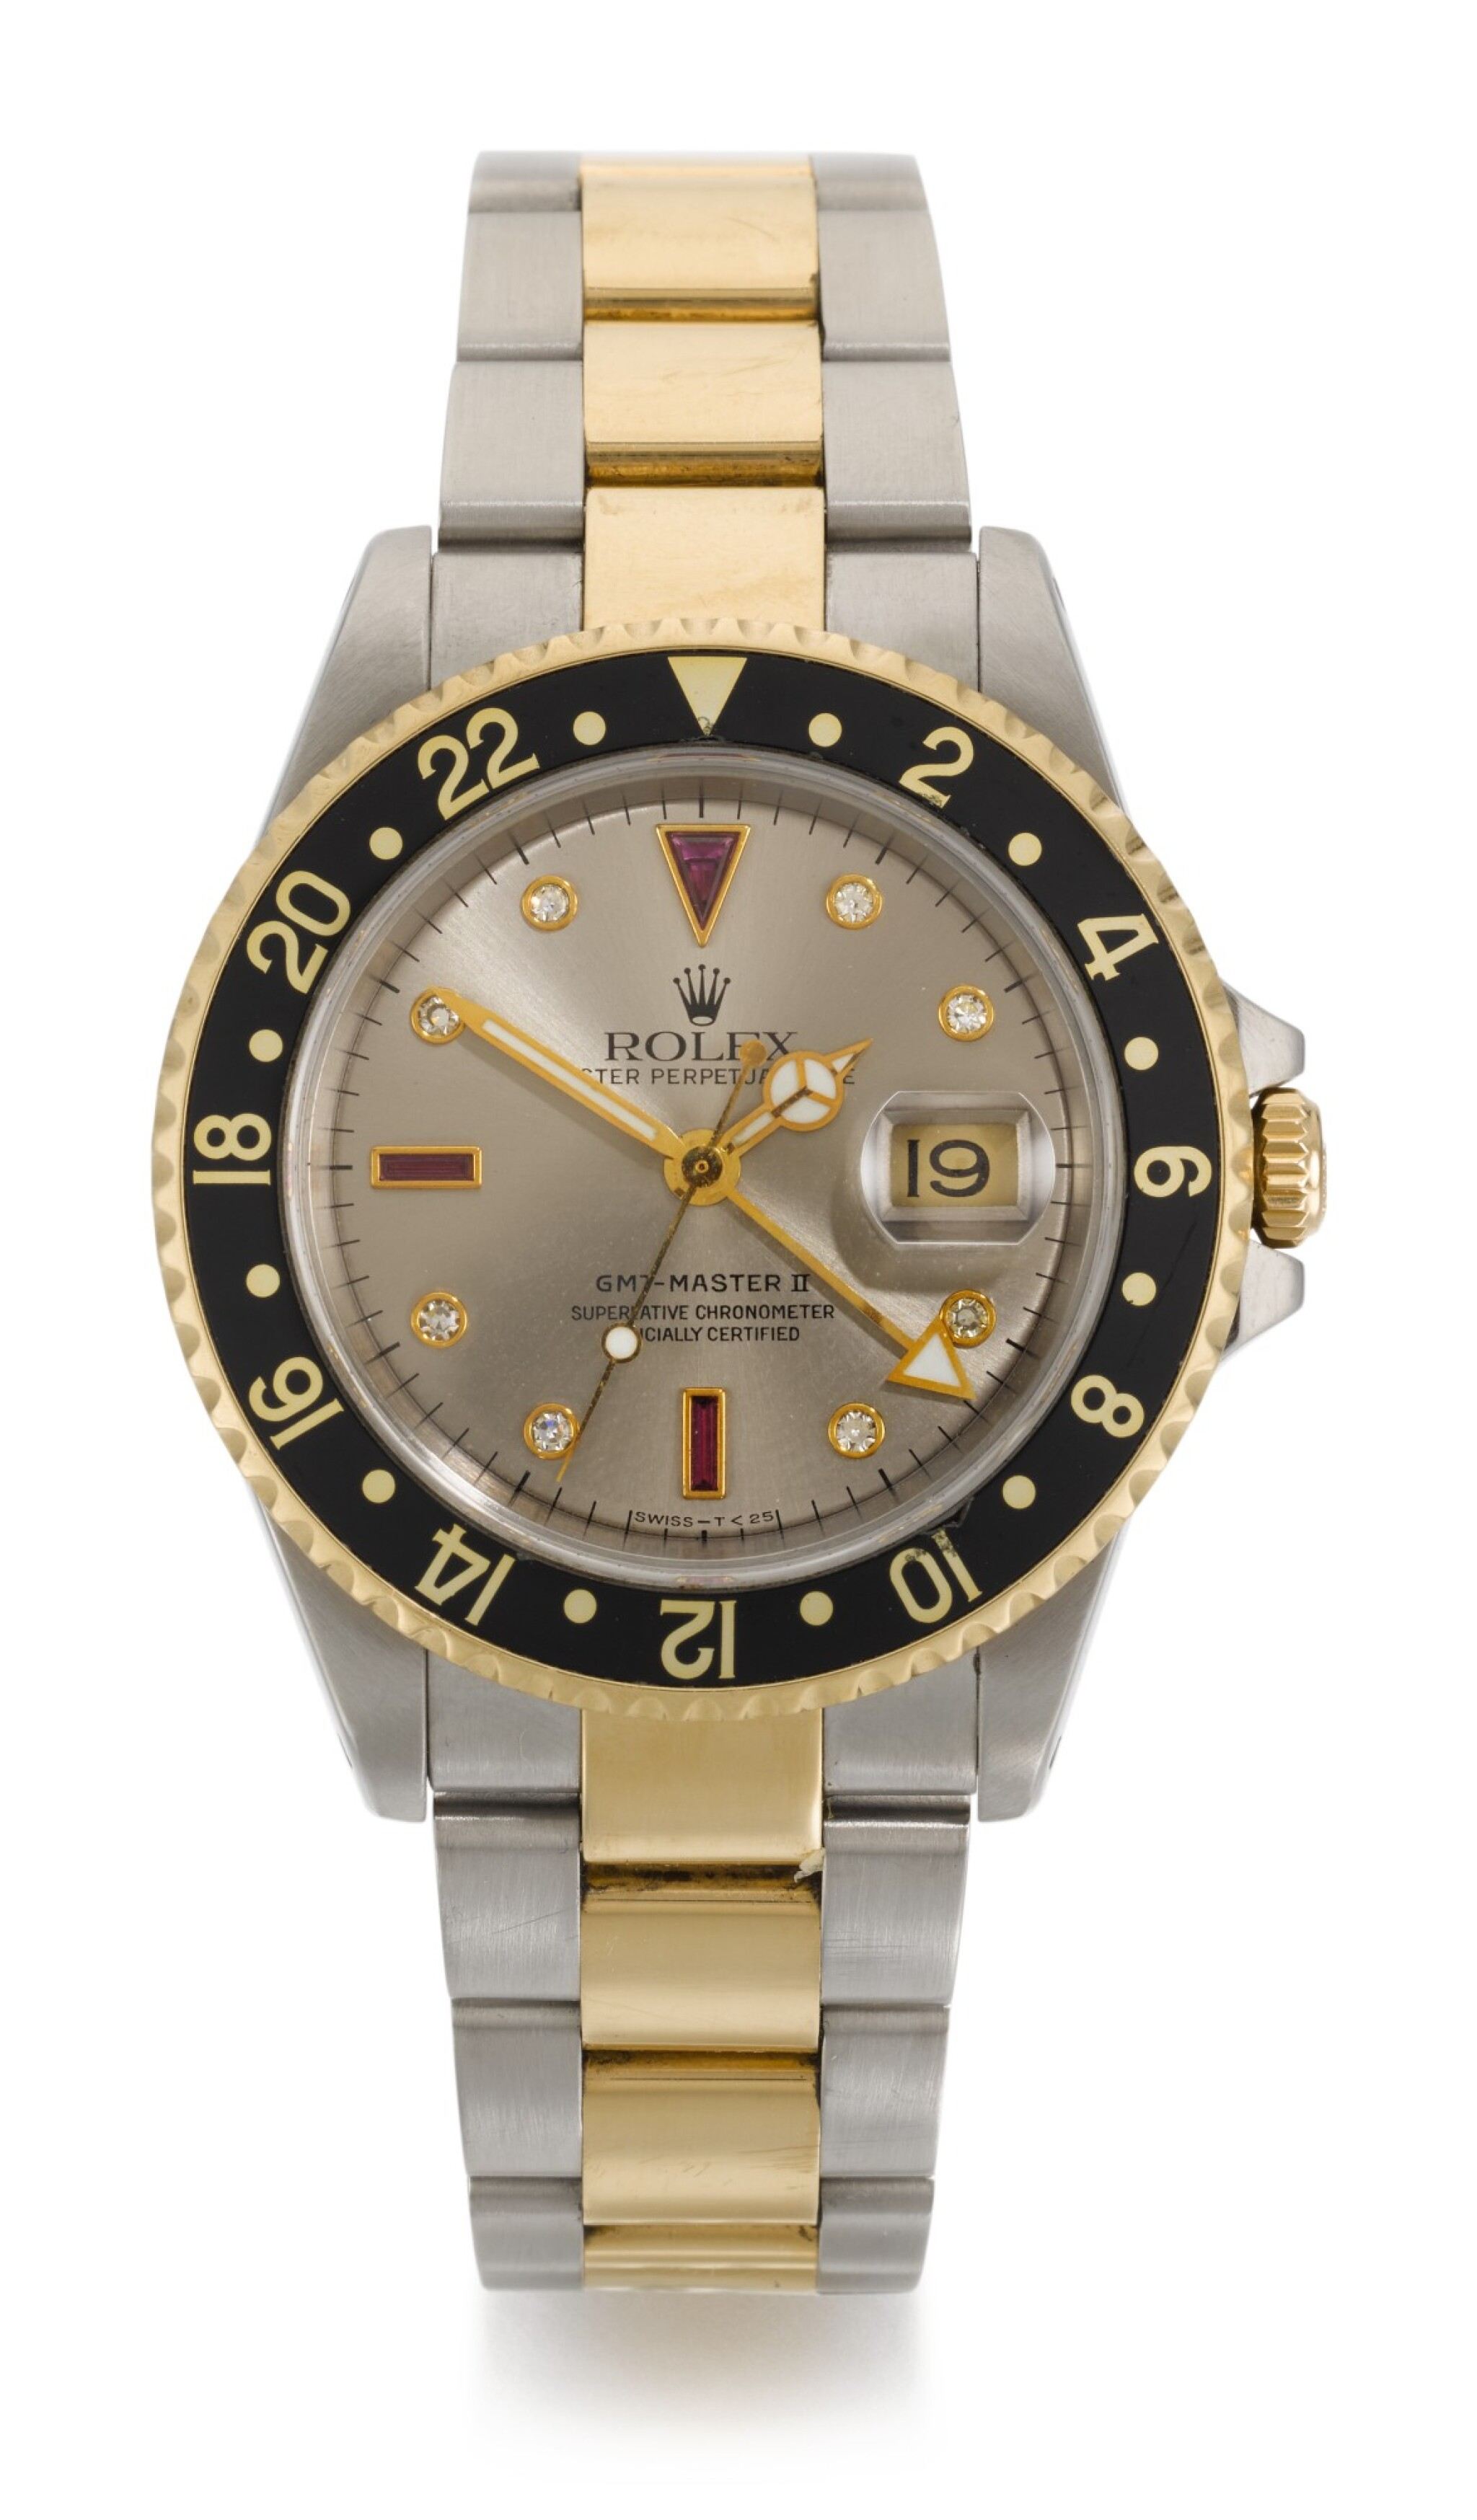 ROLEX | GMT-MASTER II SULTAN, REFERENCE 16713, STAINLESS STEEL AND YELLOW GOLD DIAMOND AND RUBY-SET DUAL-TIME WRISTWATCH WITH DATE AND BRACELET, CIRCA 1998